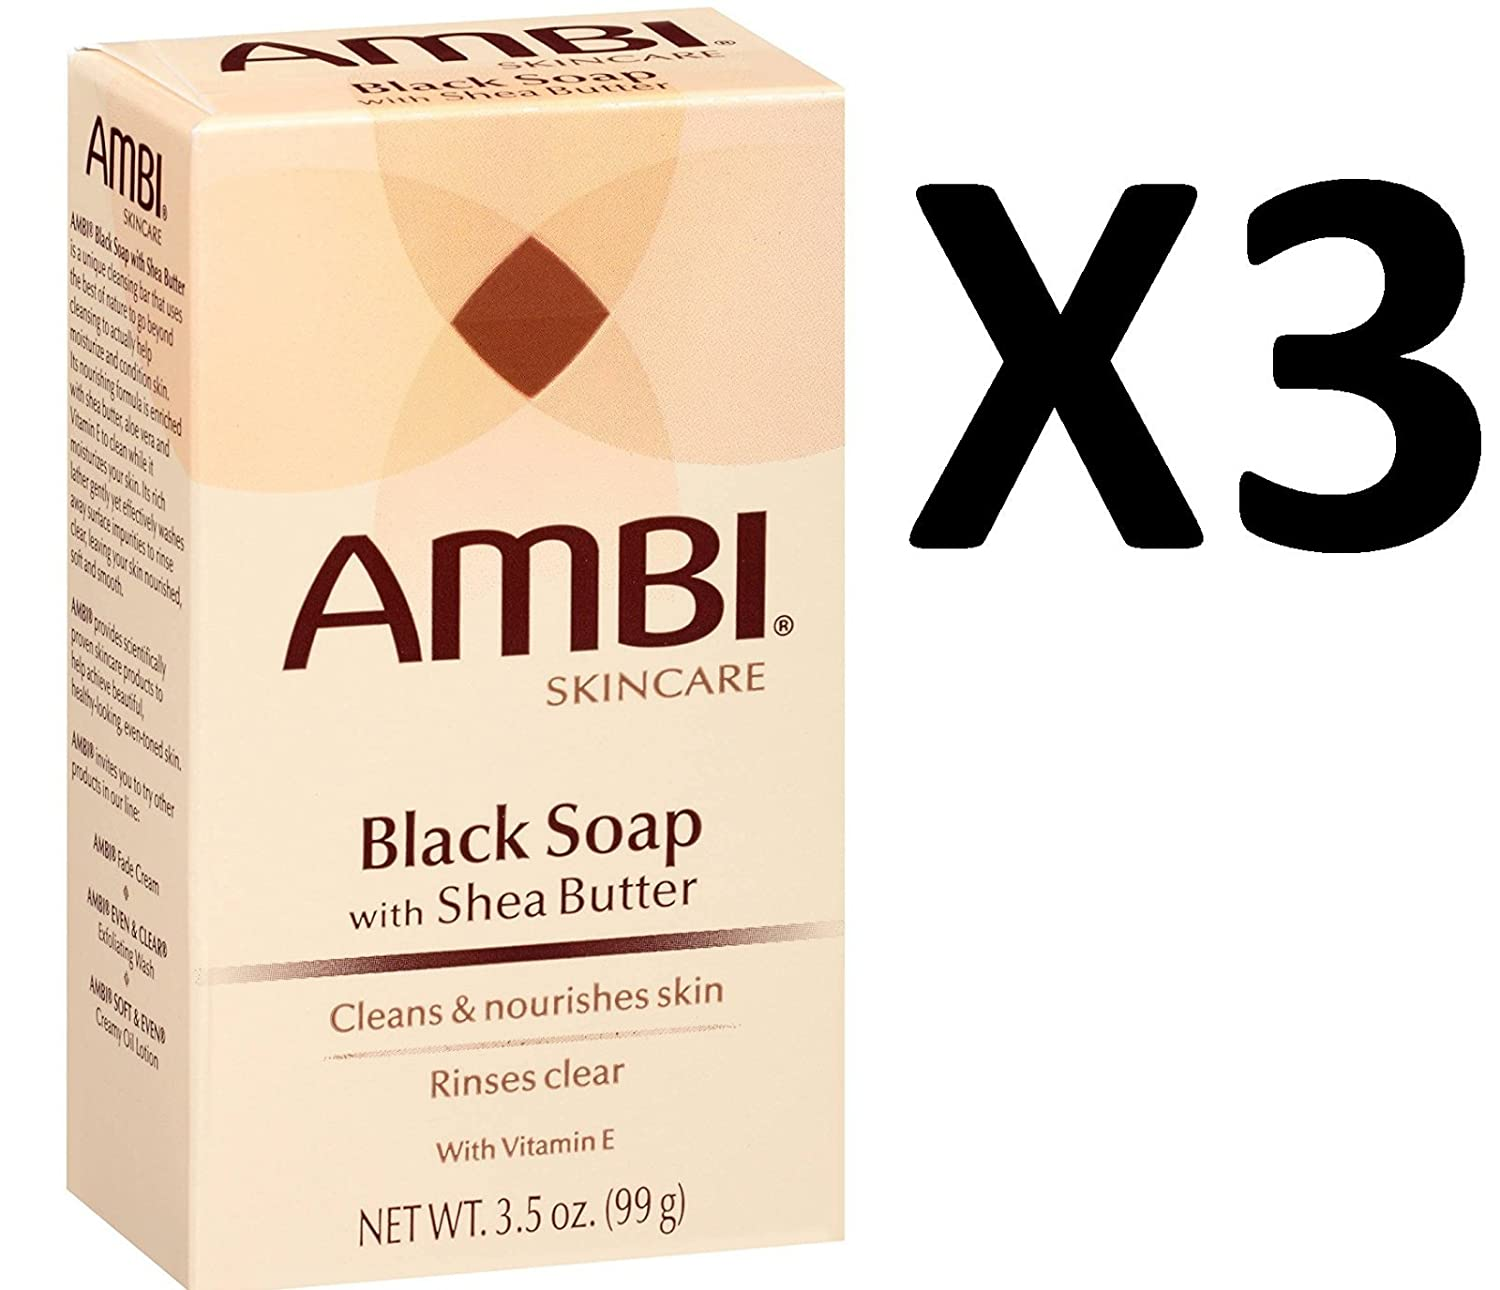 Ambi Black Soap with Shea Butter 3.50 oz (Pack of 3) Two Phase MakeUp Remover For Eyes (Salon Size) 16.9oz